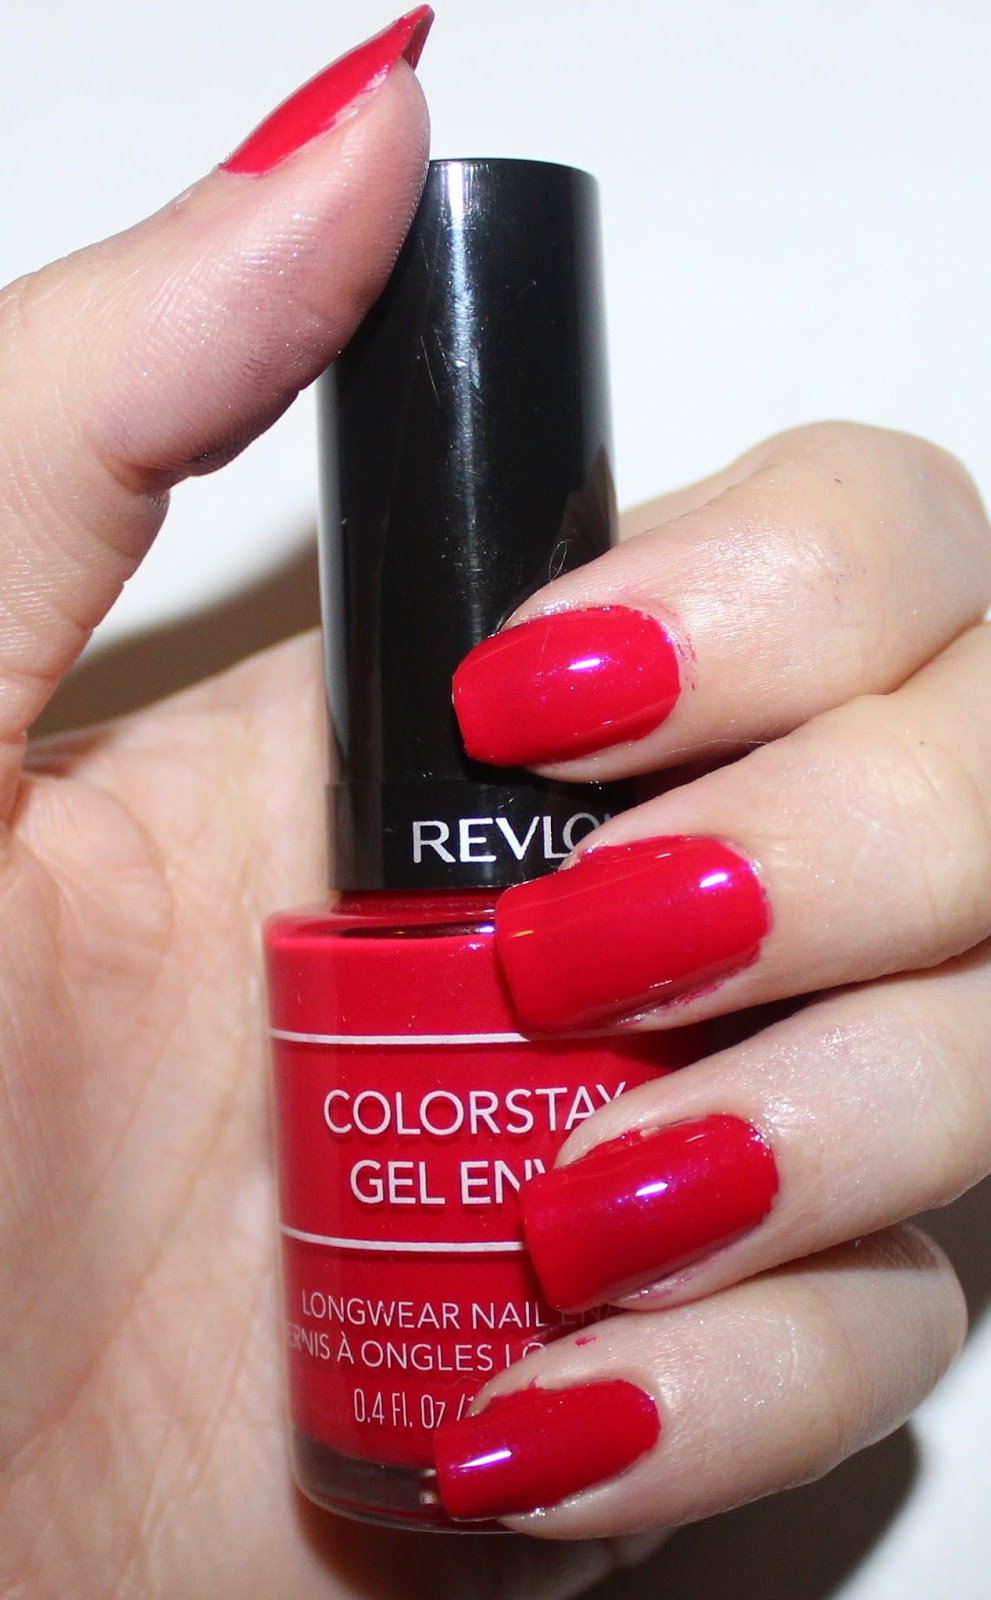 Beyond blush revlon colorstay gel envy longwear nail enamel in revlon colorstay gel envy longwear nail enamel in roulette rush nvjuhfo Image collections